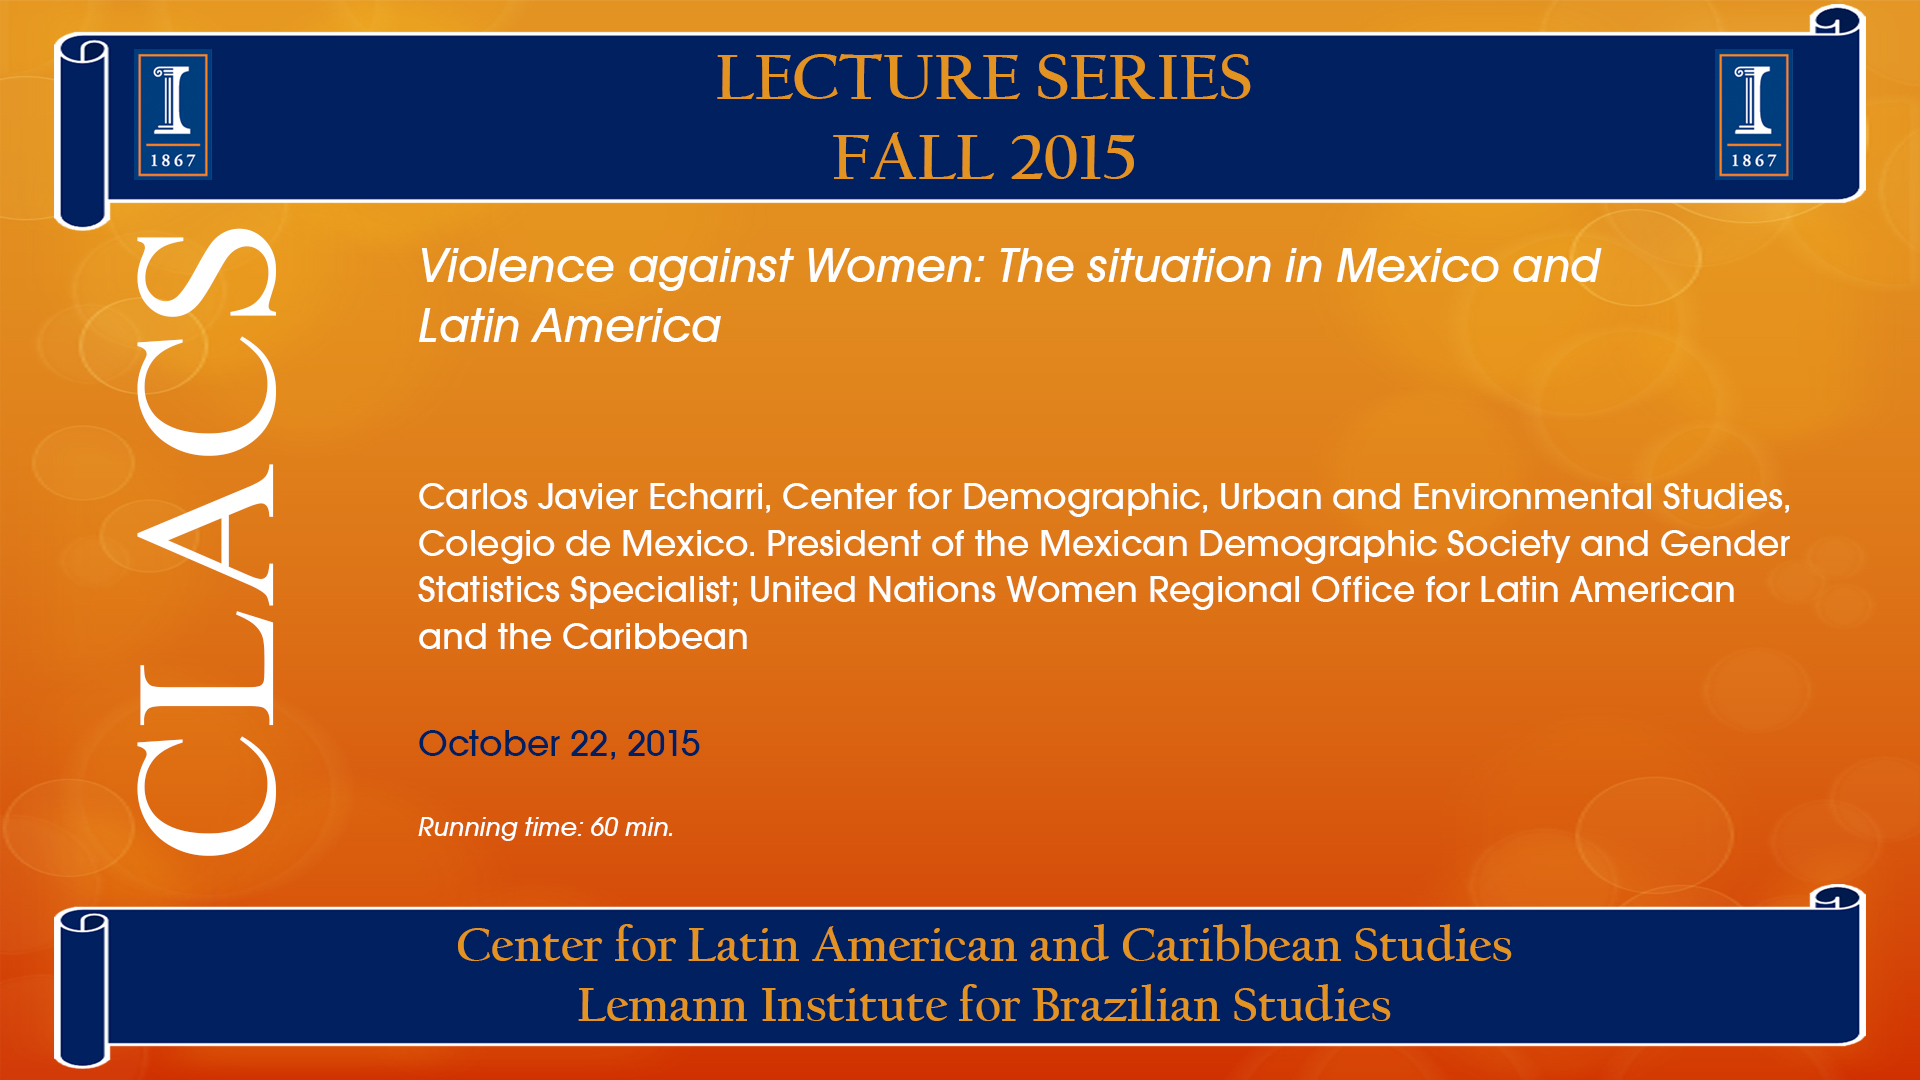 Violence against Women: The situation in Mexico and Latin America